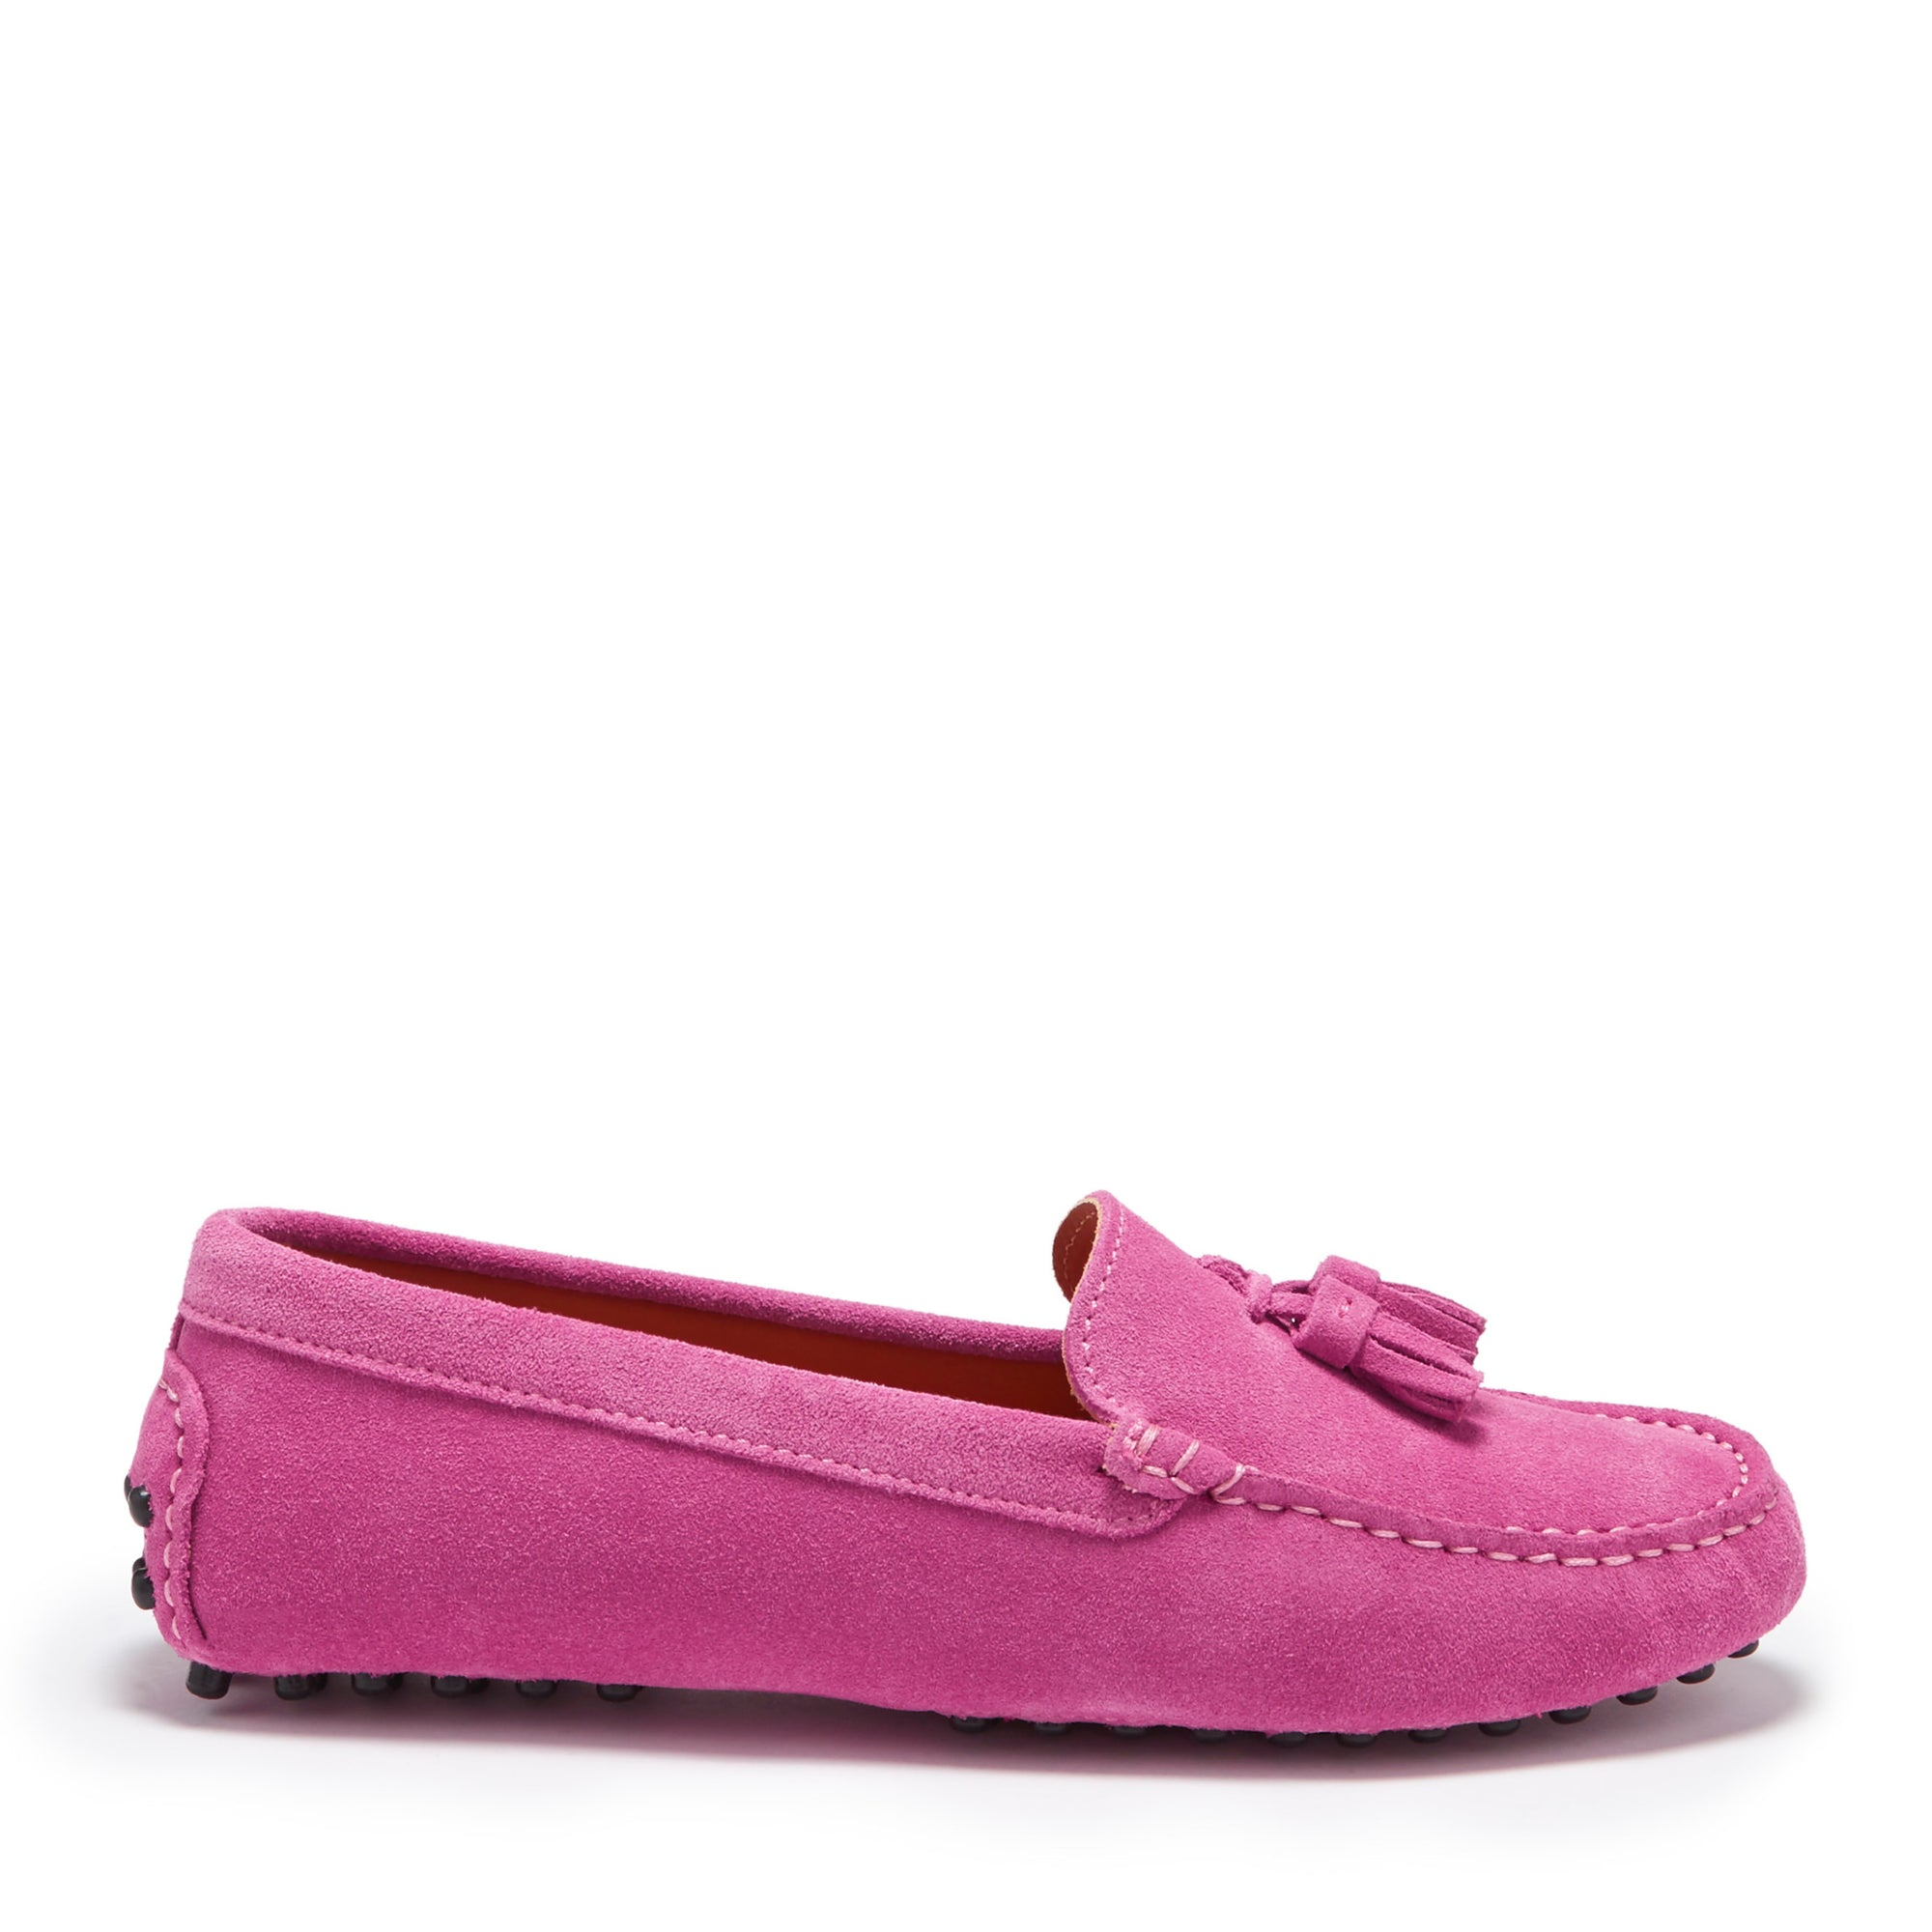 Women's Tasselled Driving Loafers, pink suede